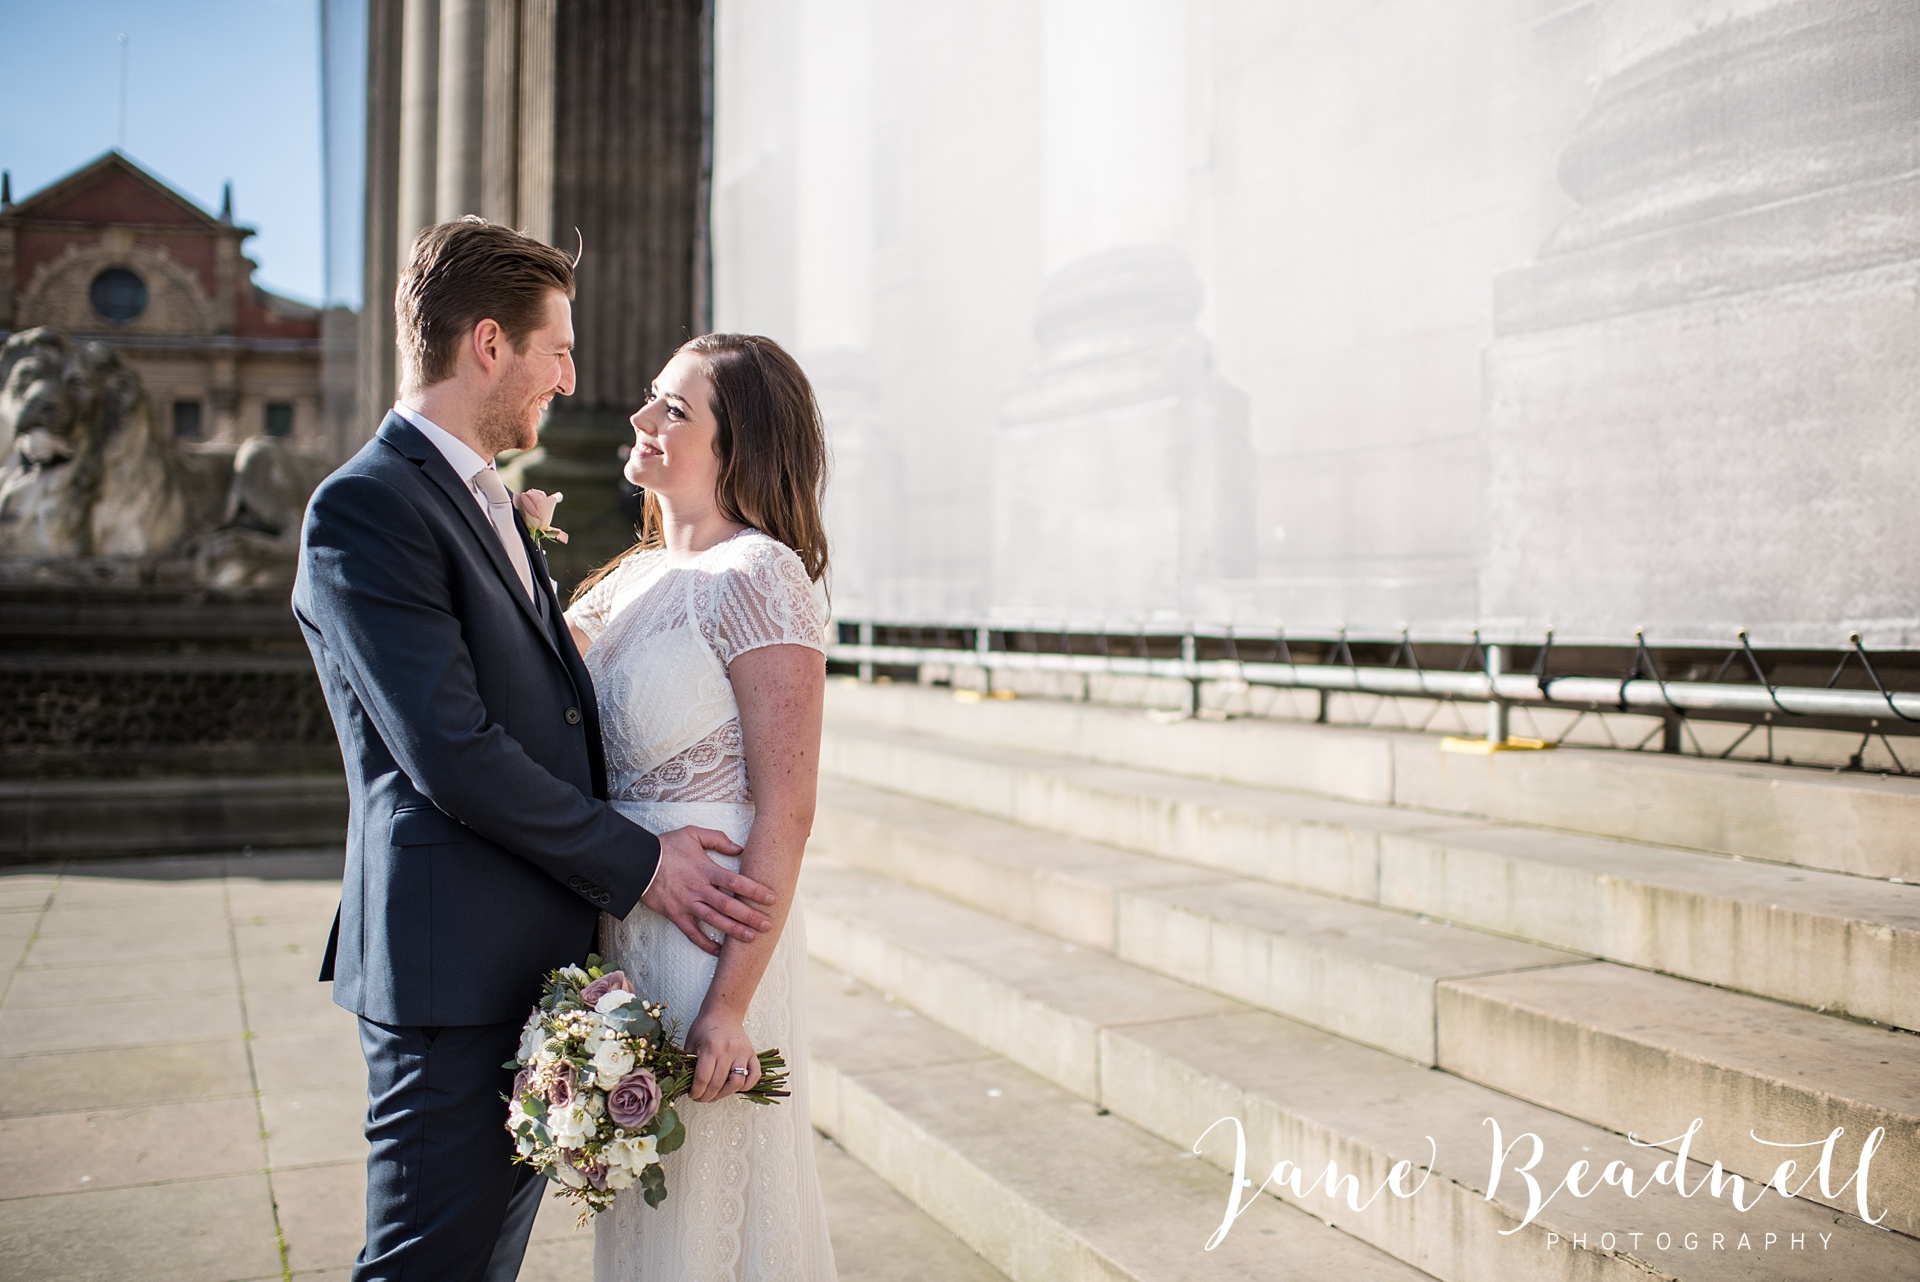 Wedding photography Cross Keys Leeds Wedding Jane Beadnell Photography_0056